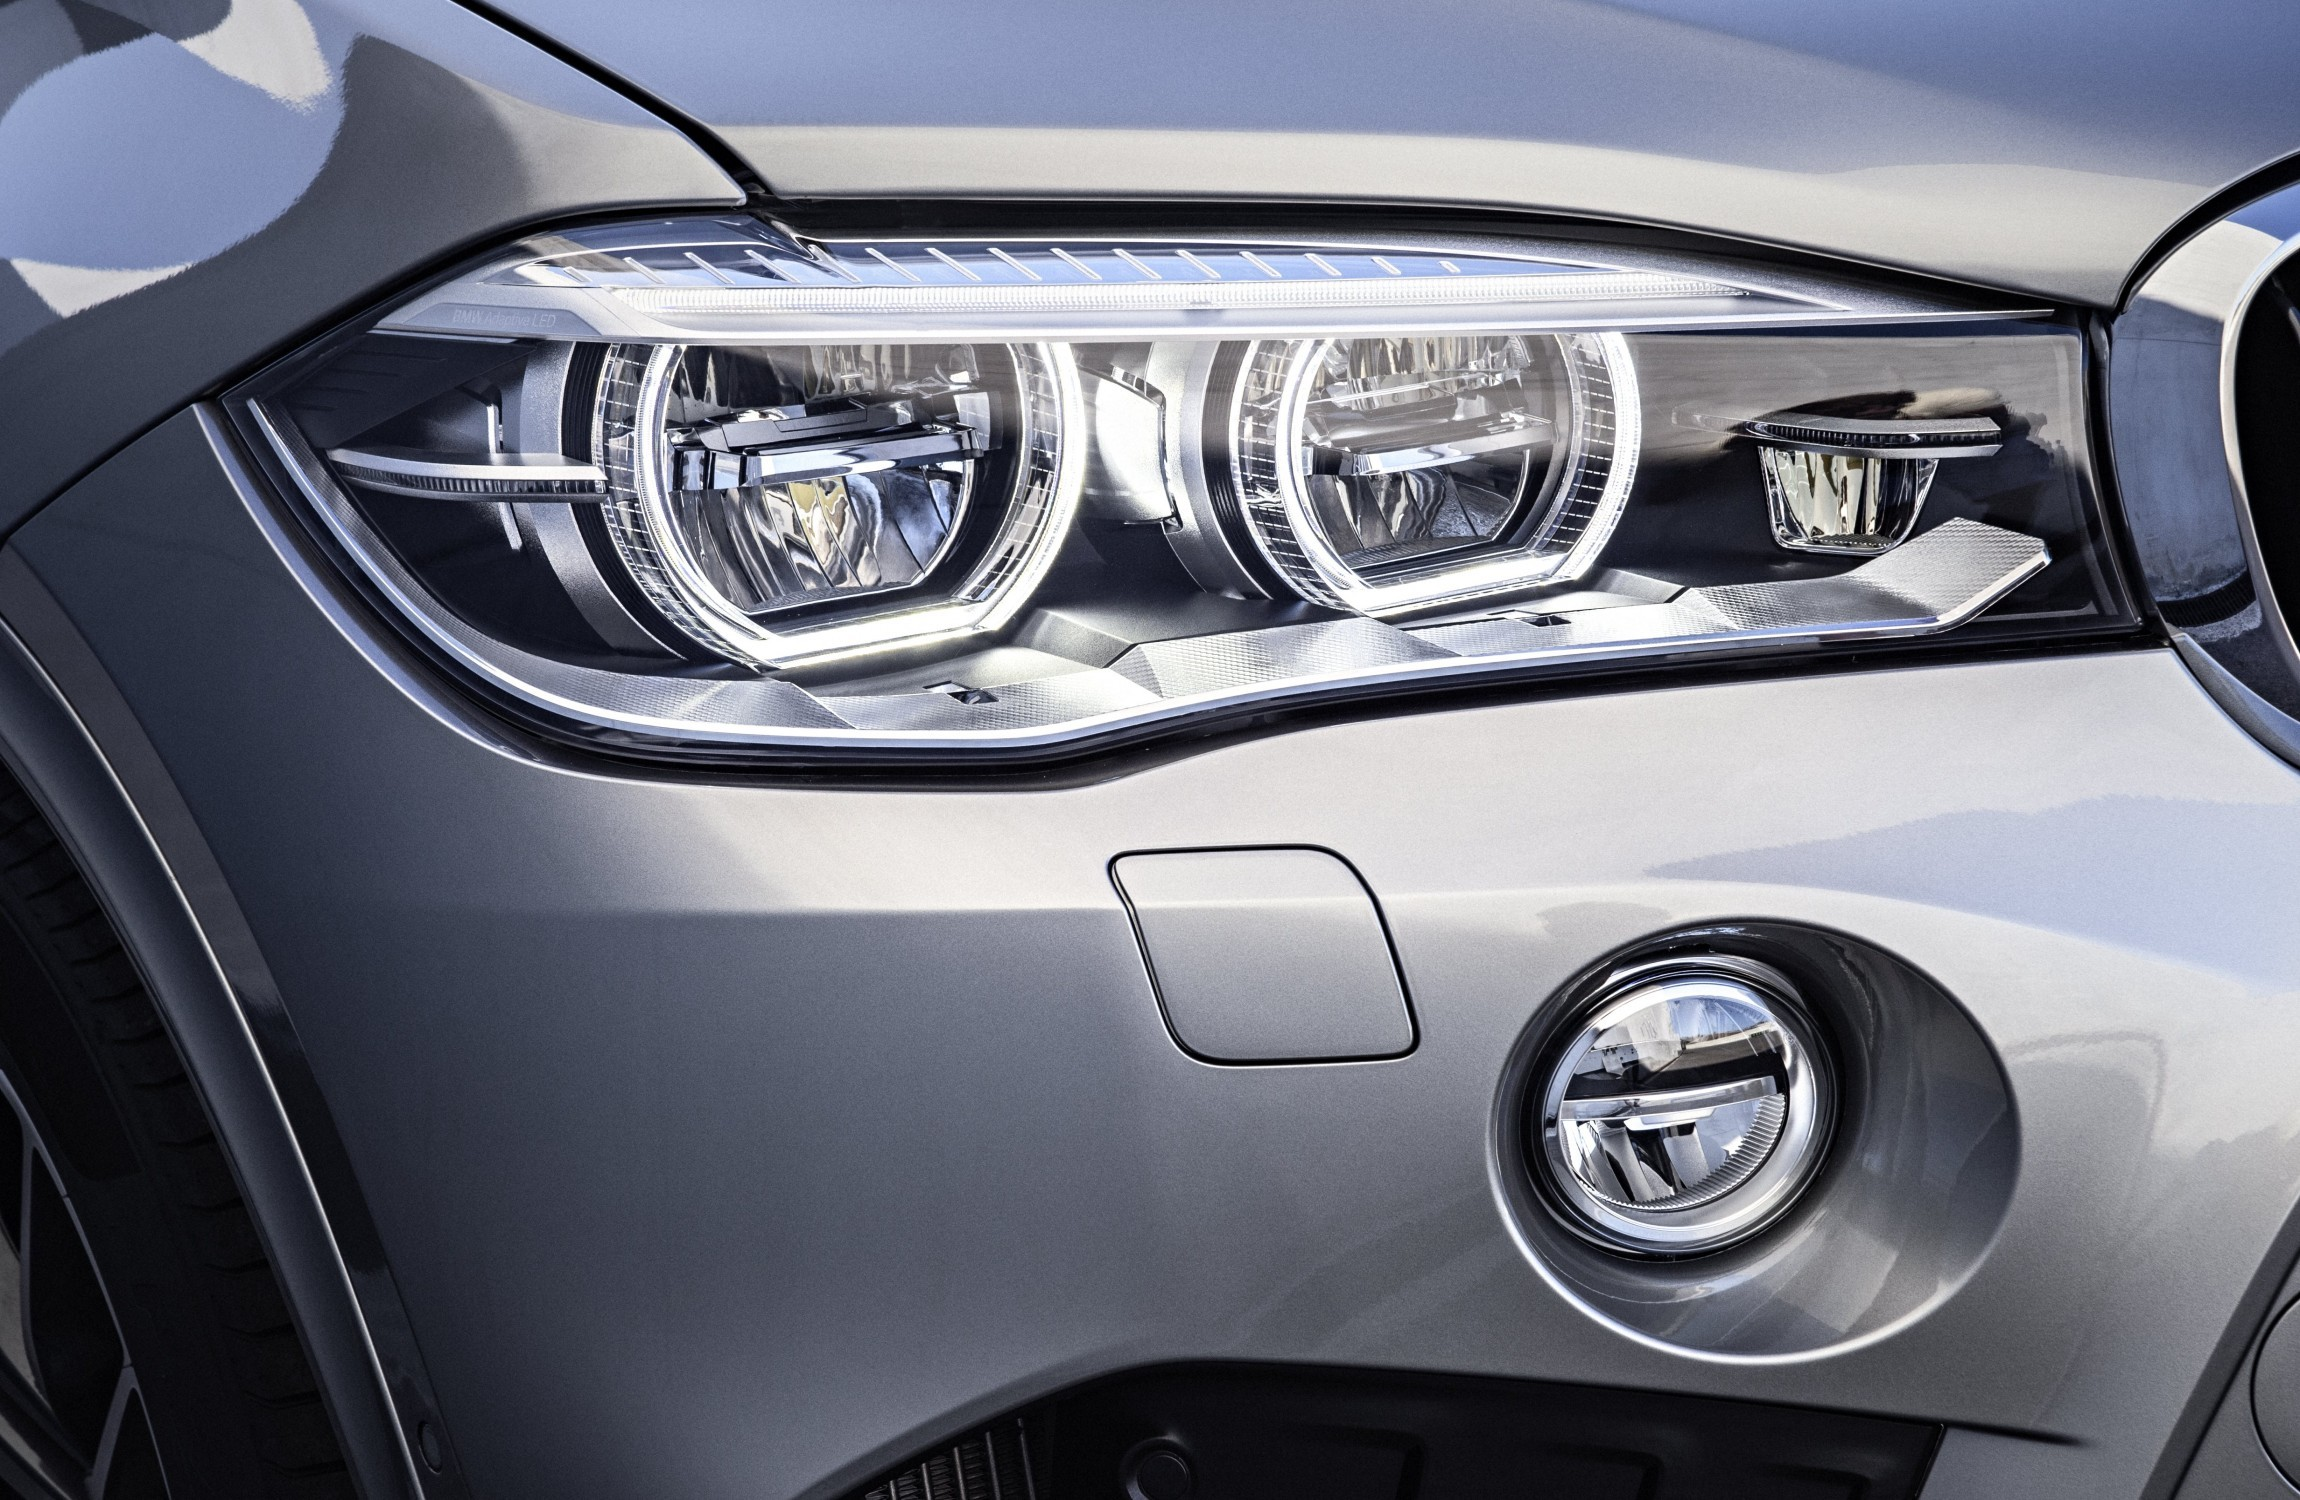 hight resolution of are xenon headlights really better than halogen ones